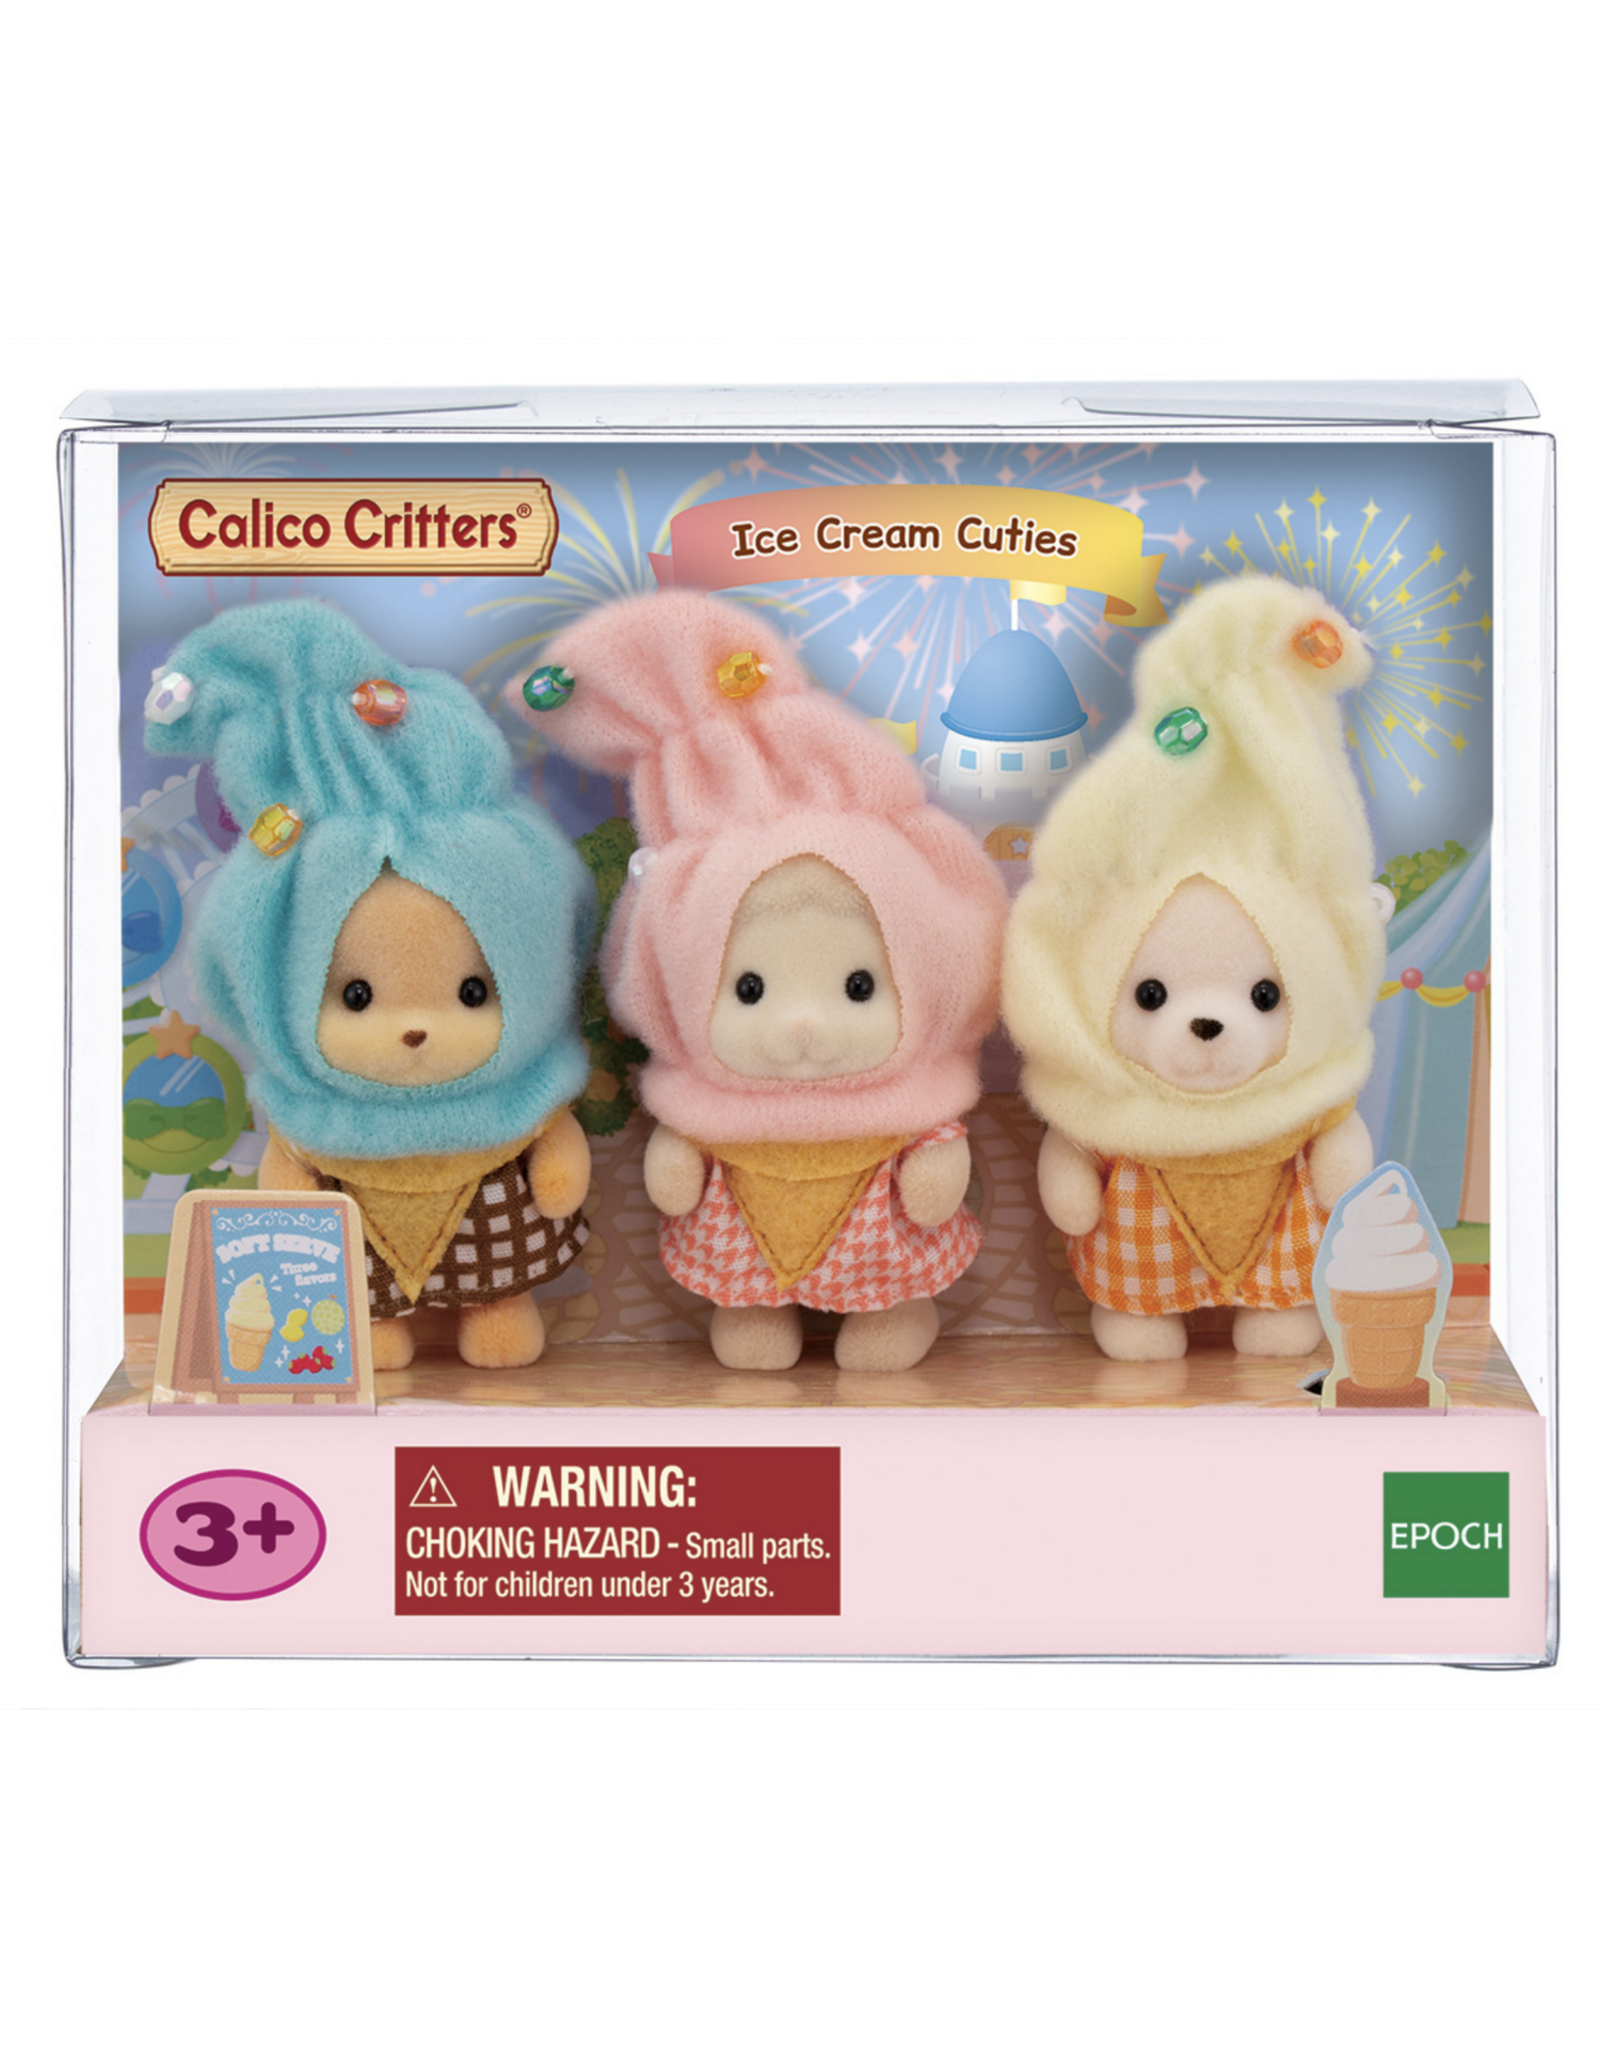 Calico Critters Calico Critters Ice Cream Cuties